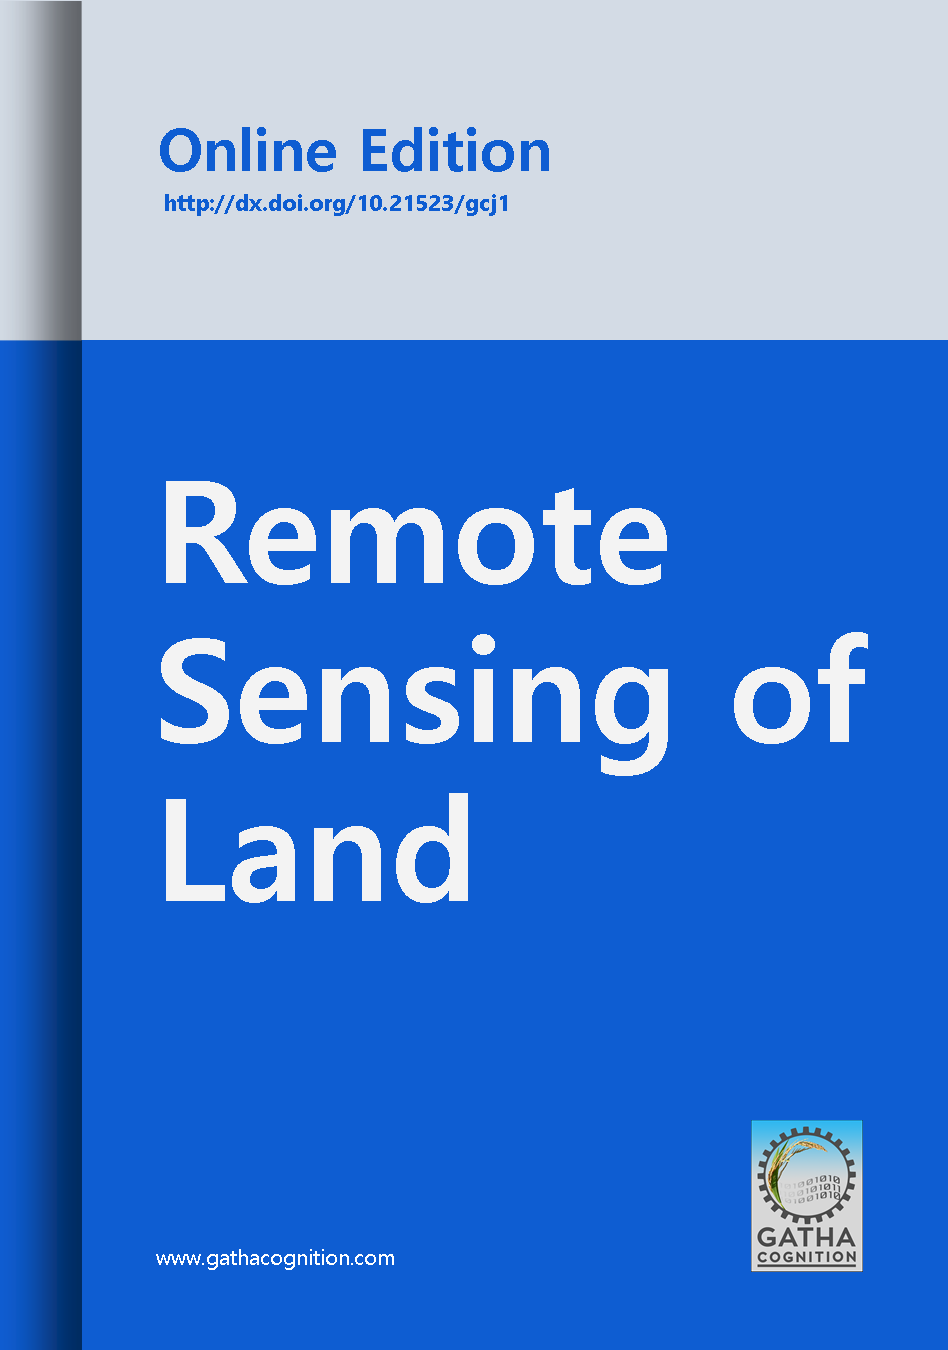 Remote Sensing Satellites for Land Applications: A Review